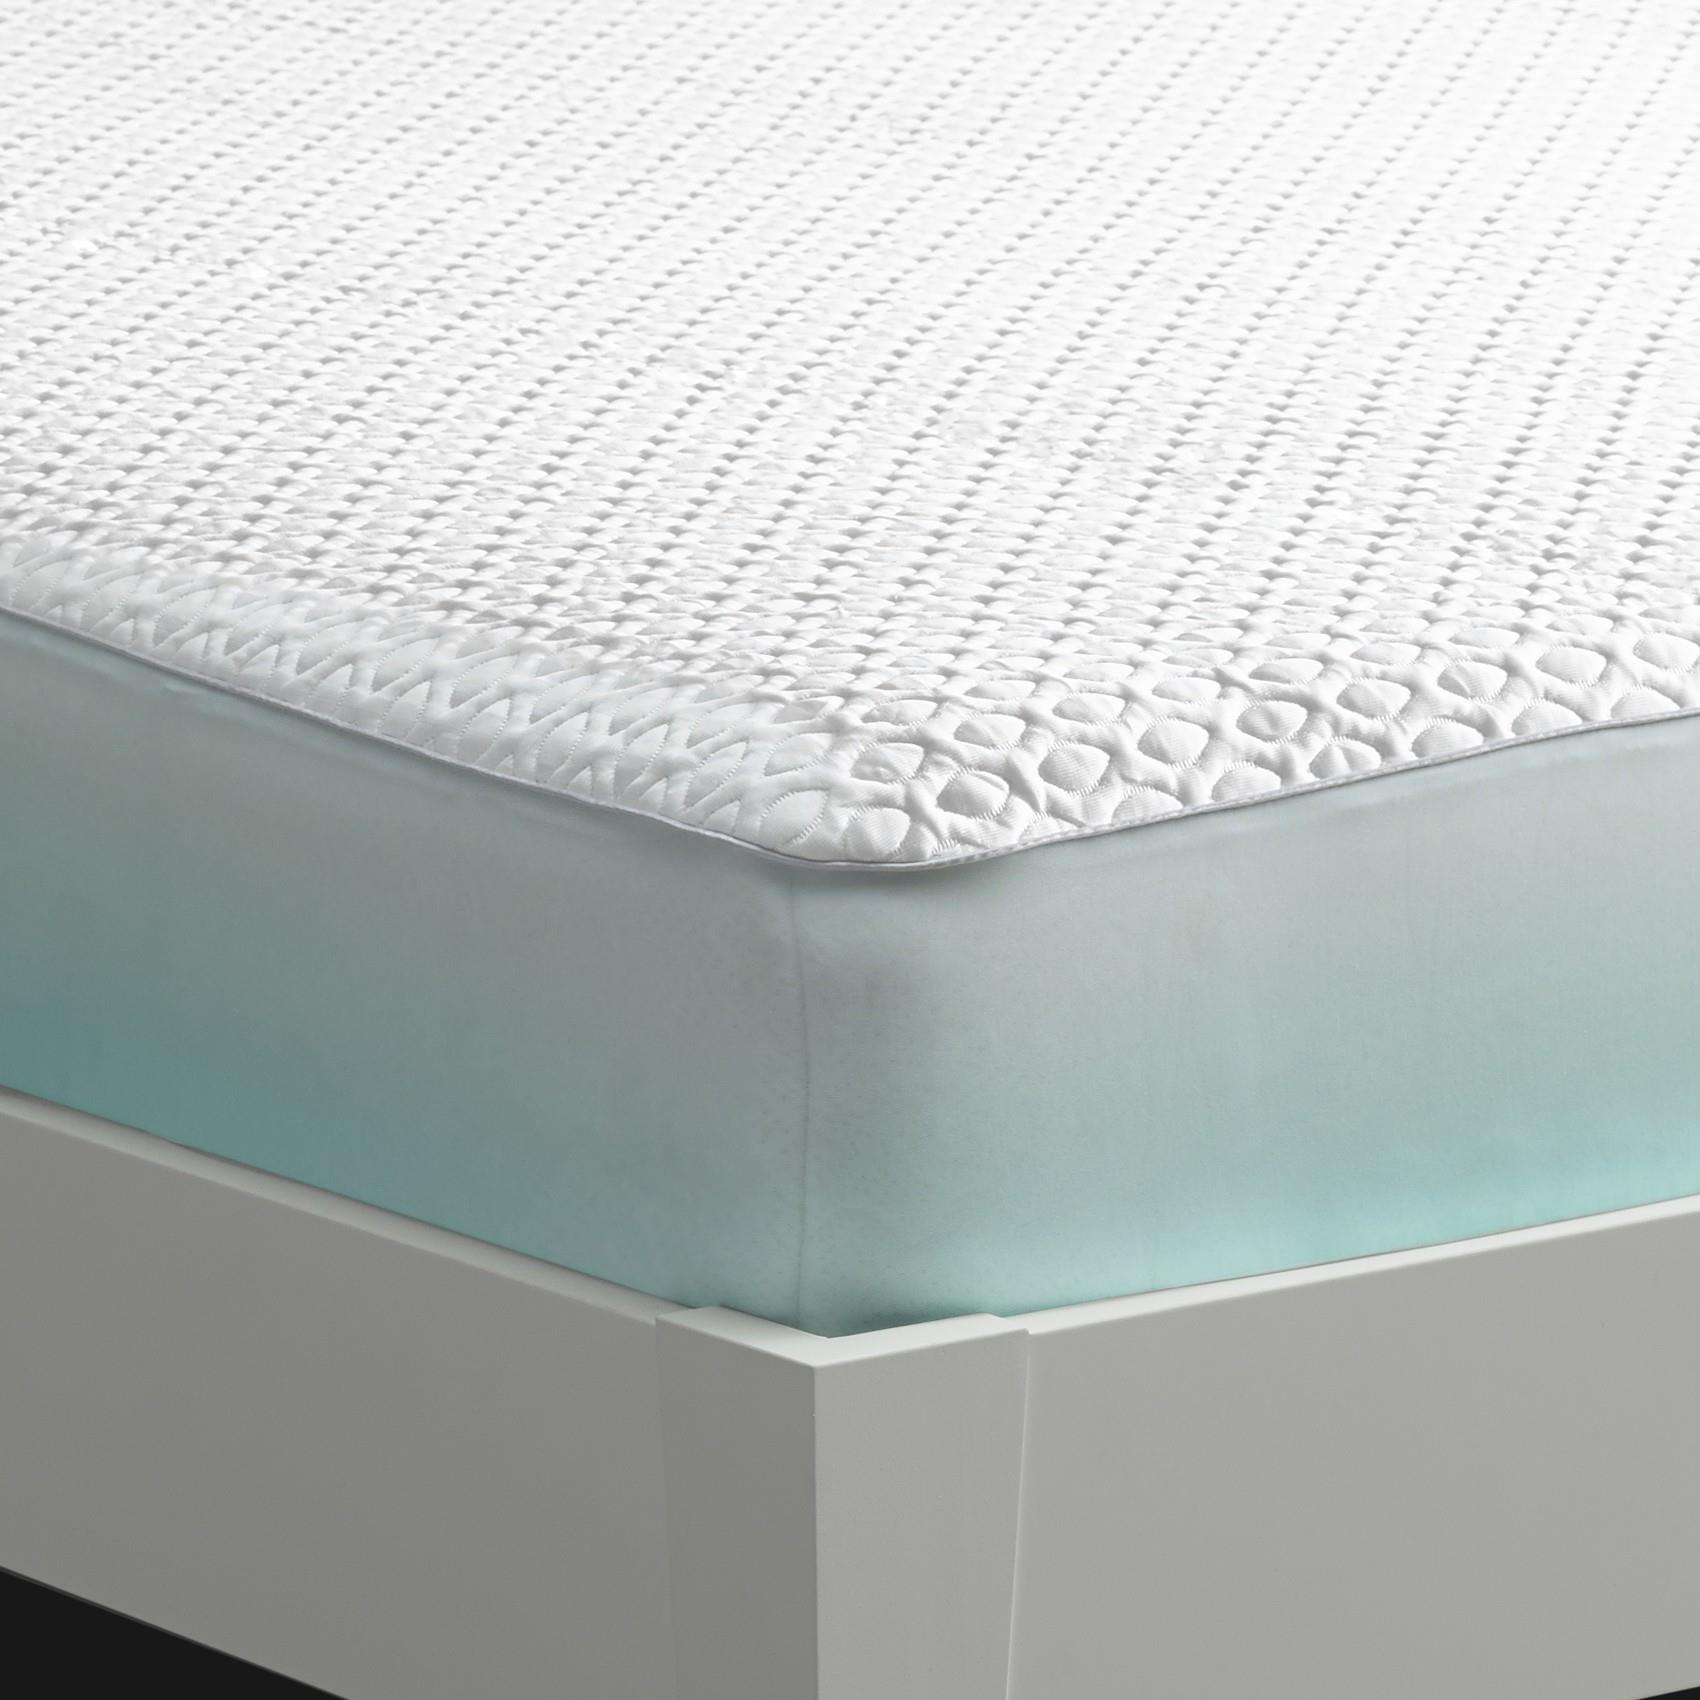 Bedgear Ver-Tex Queen Mattress Protector - Item Number: BGM61AWFQ